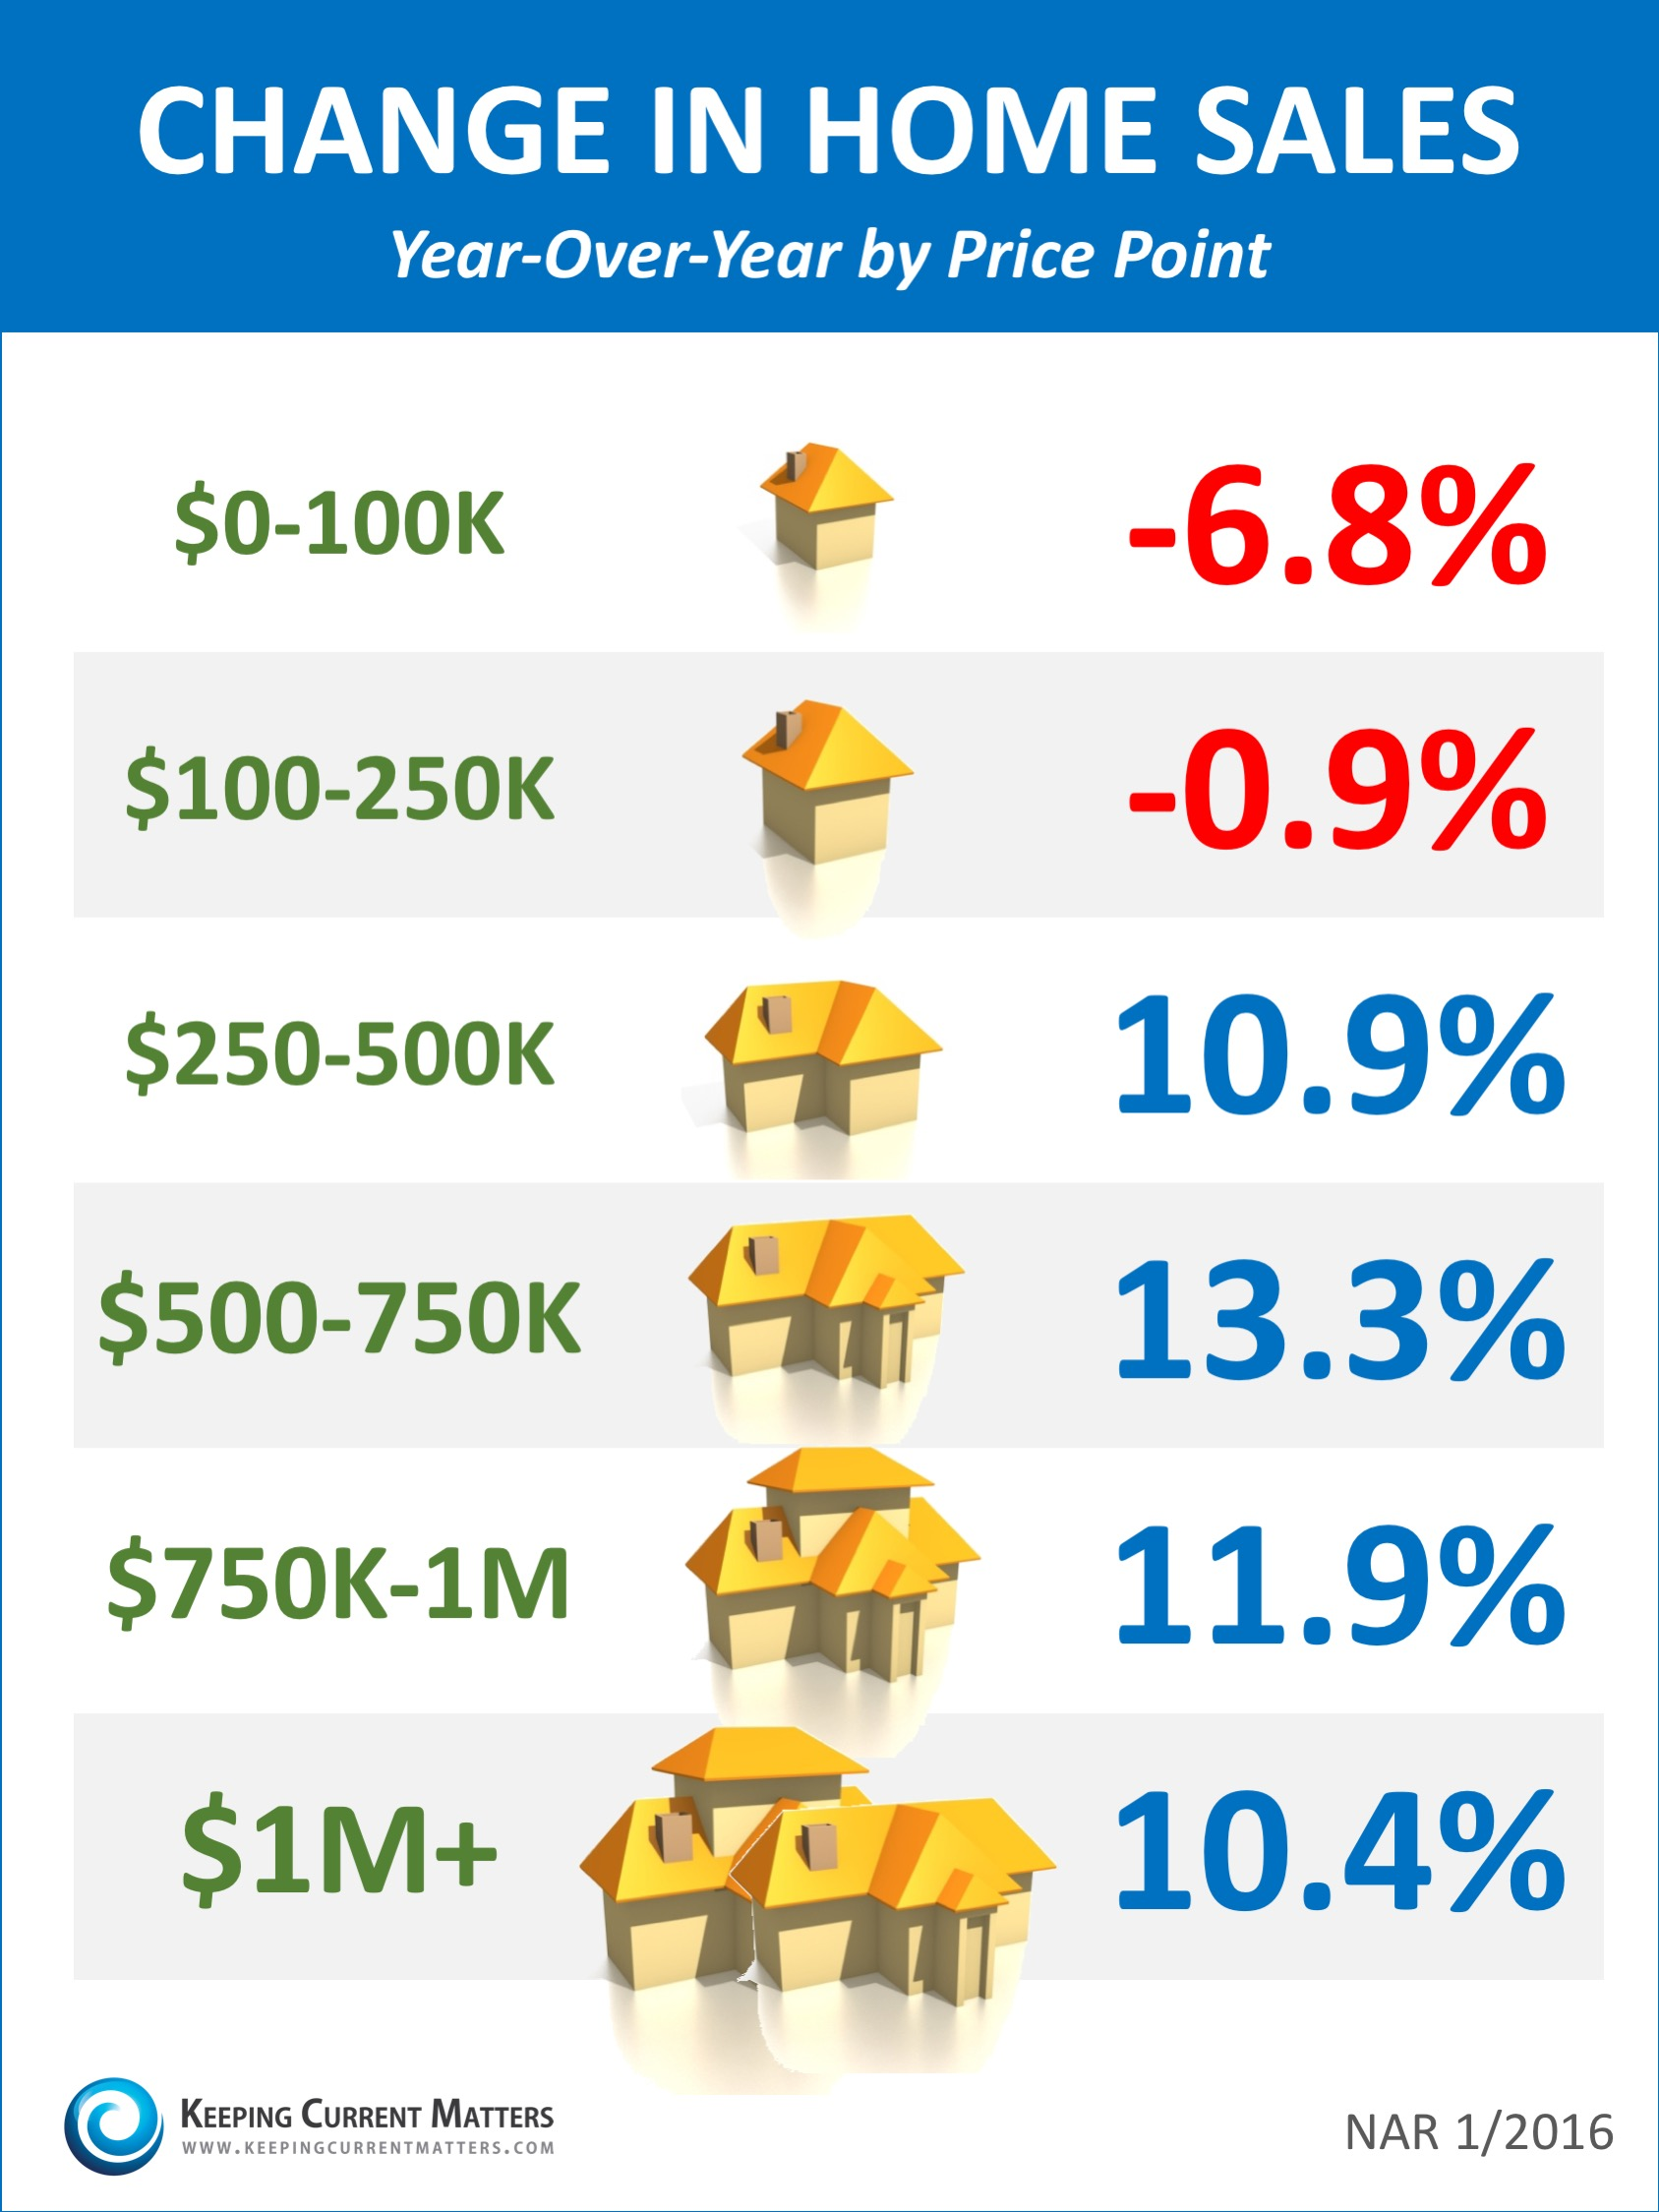 Change In Home Sales By Price Range [INFOGRAPHIC] | Keeping Current Matters